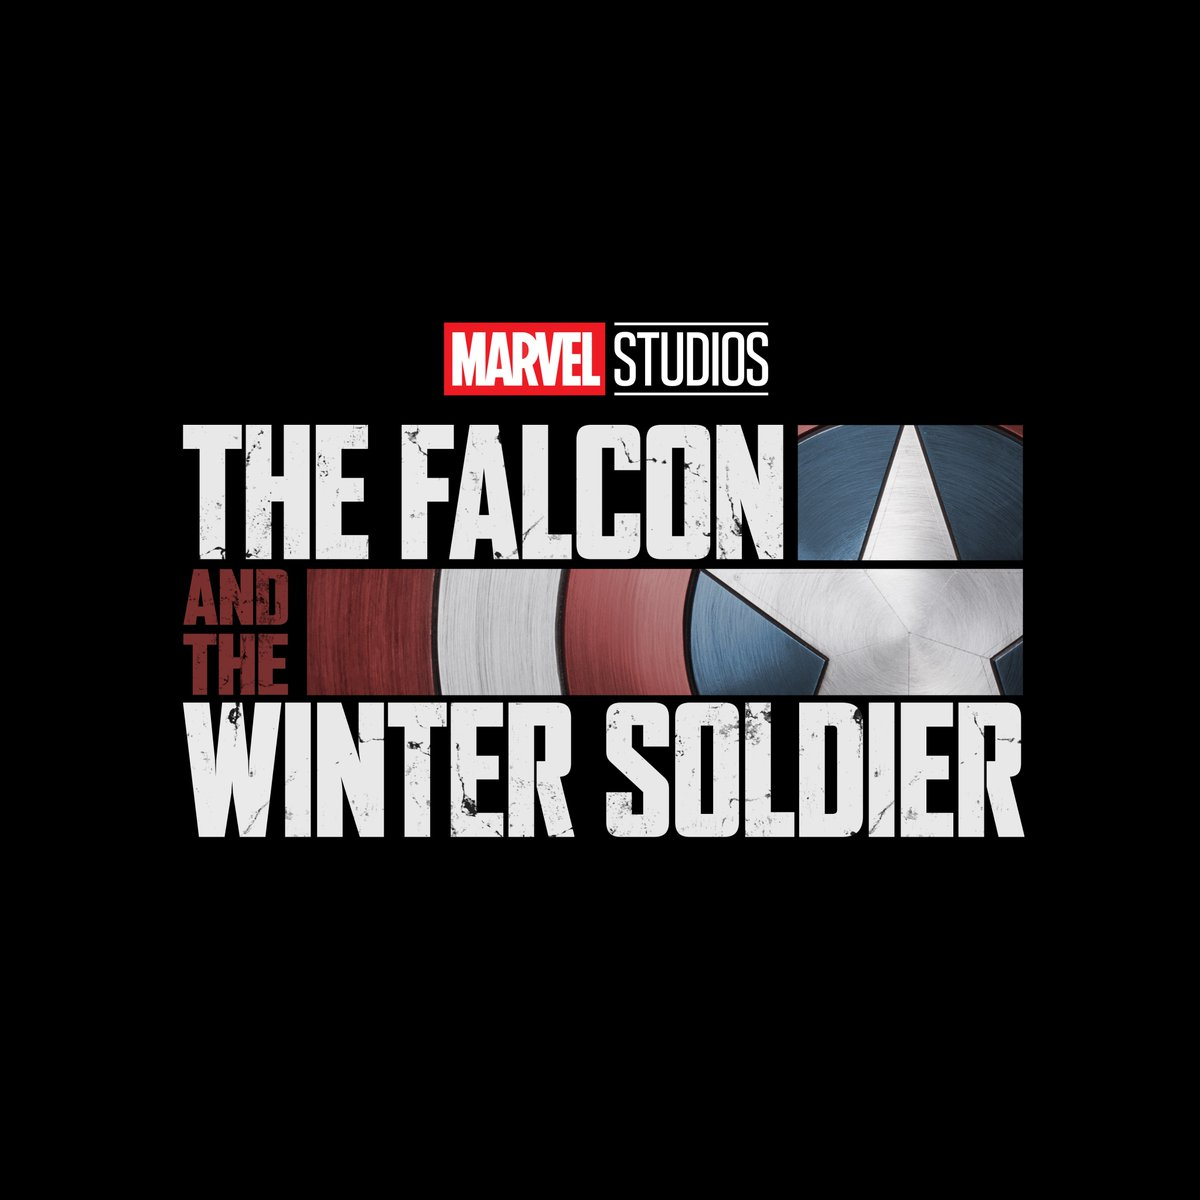 Marvel Studios et disney+ The Falcon and the winter soldier